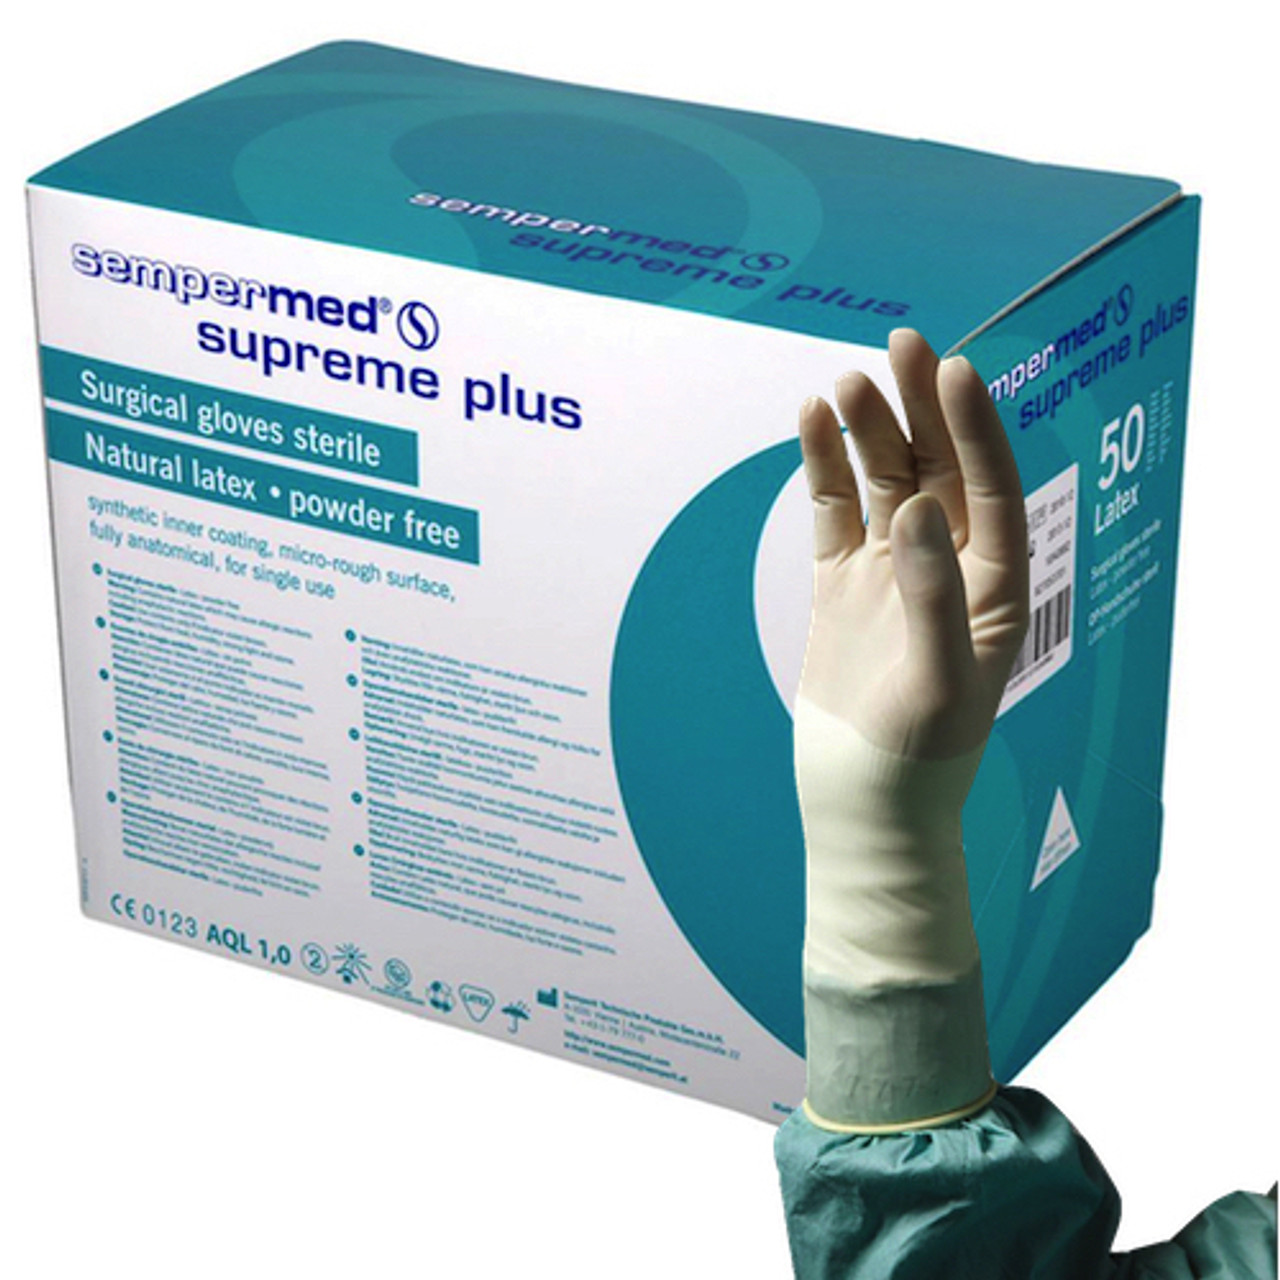 Sempermed Supreme Plus Surgical Gloves Sterile 8 Latex Powder Free (SUS822851F)